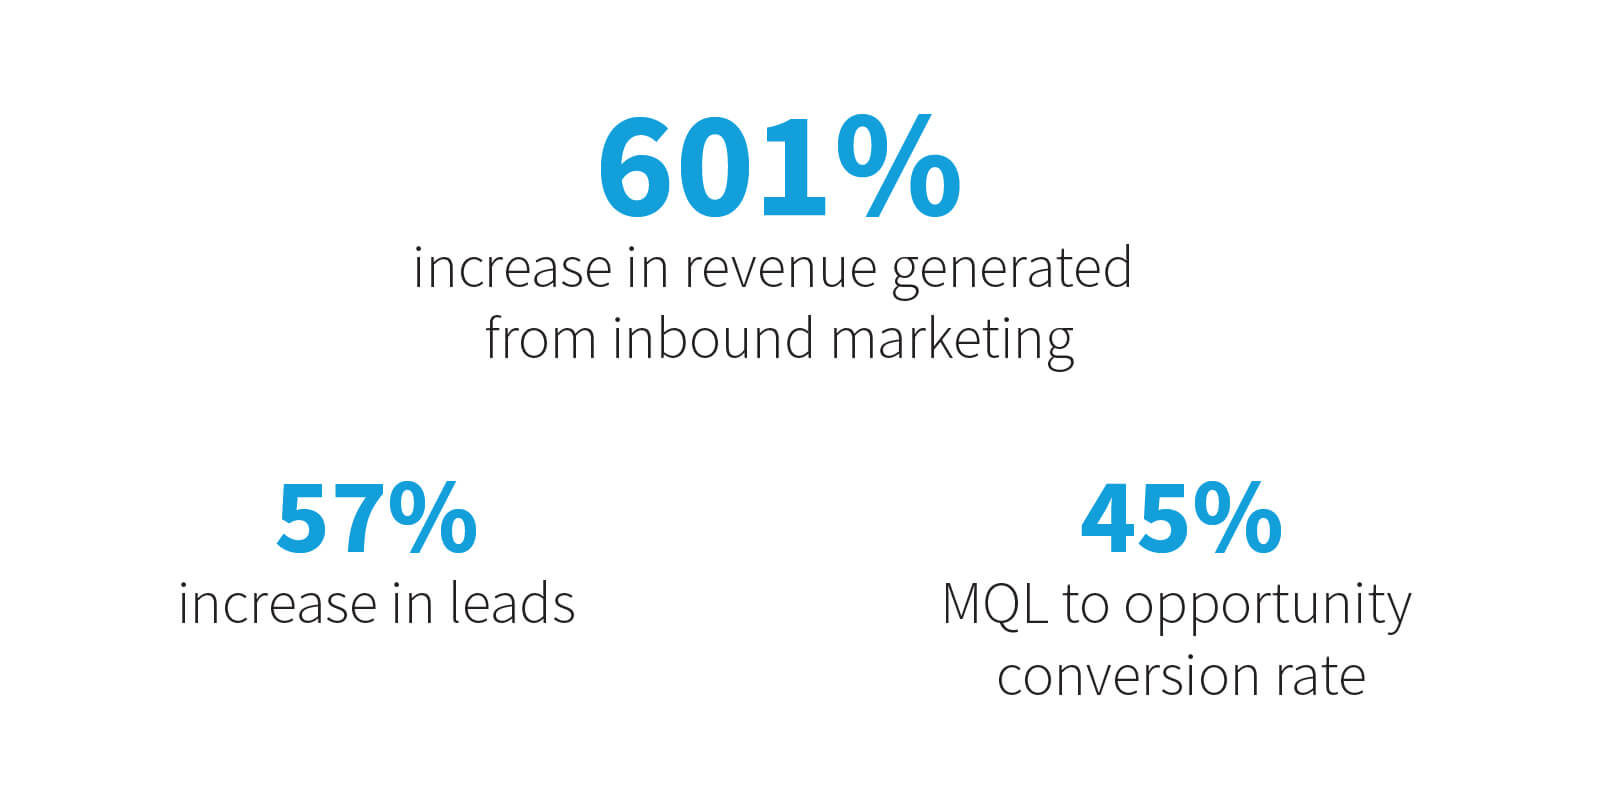 601% Increase in revenue generated from inbound marketing through nurture optimizations